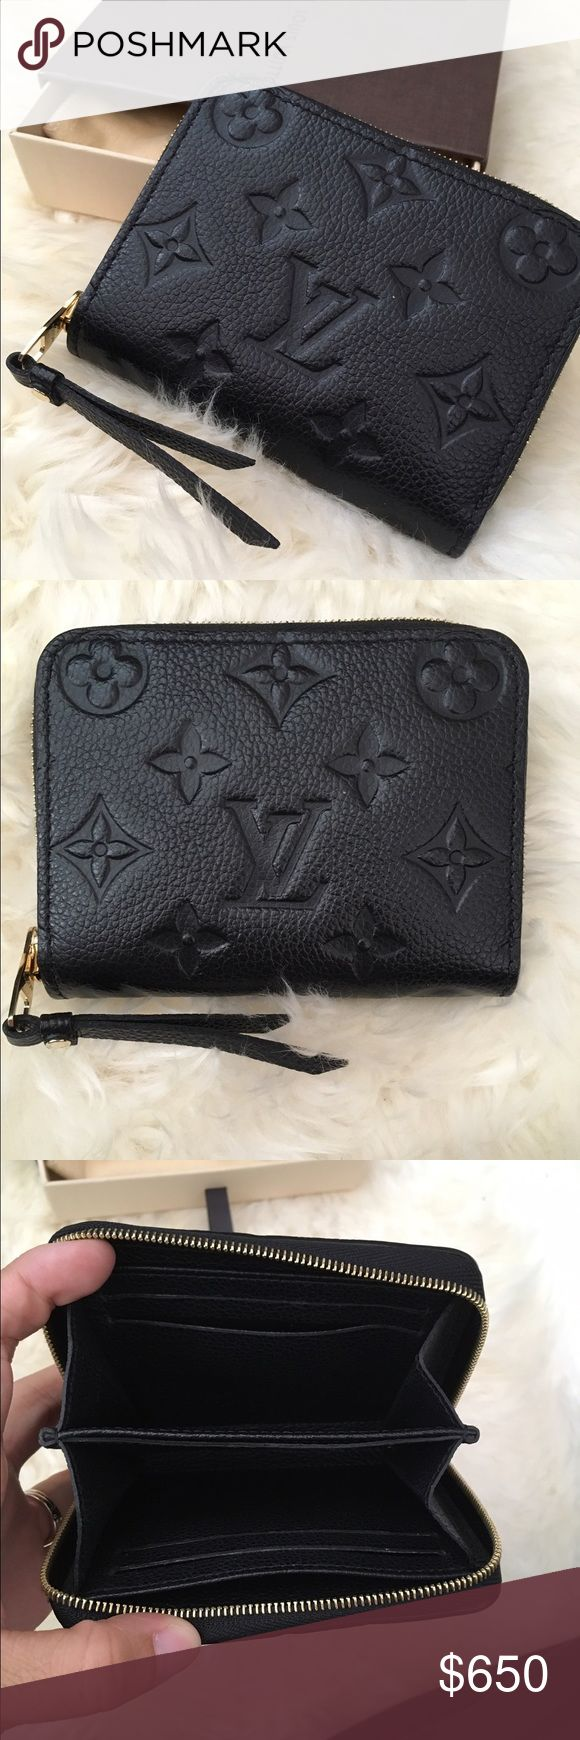 Louis Vuitton empreinte zippy coin purse 100% authentic. Soft empreinte leather. Made in France. In excellent like new condition. Gently used a few times so there's no visible signs of wear. Slight marks on zipper pull hardware that's not noticeable. More pictures on my eb@y page. Also on merc@ri. Price on posh is firm Louis Vuitton Bags Wallets